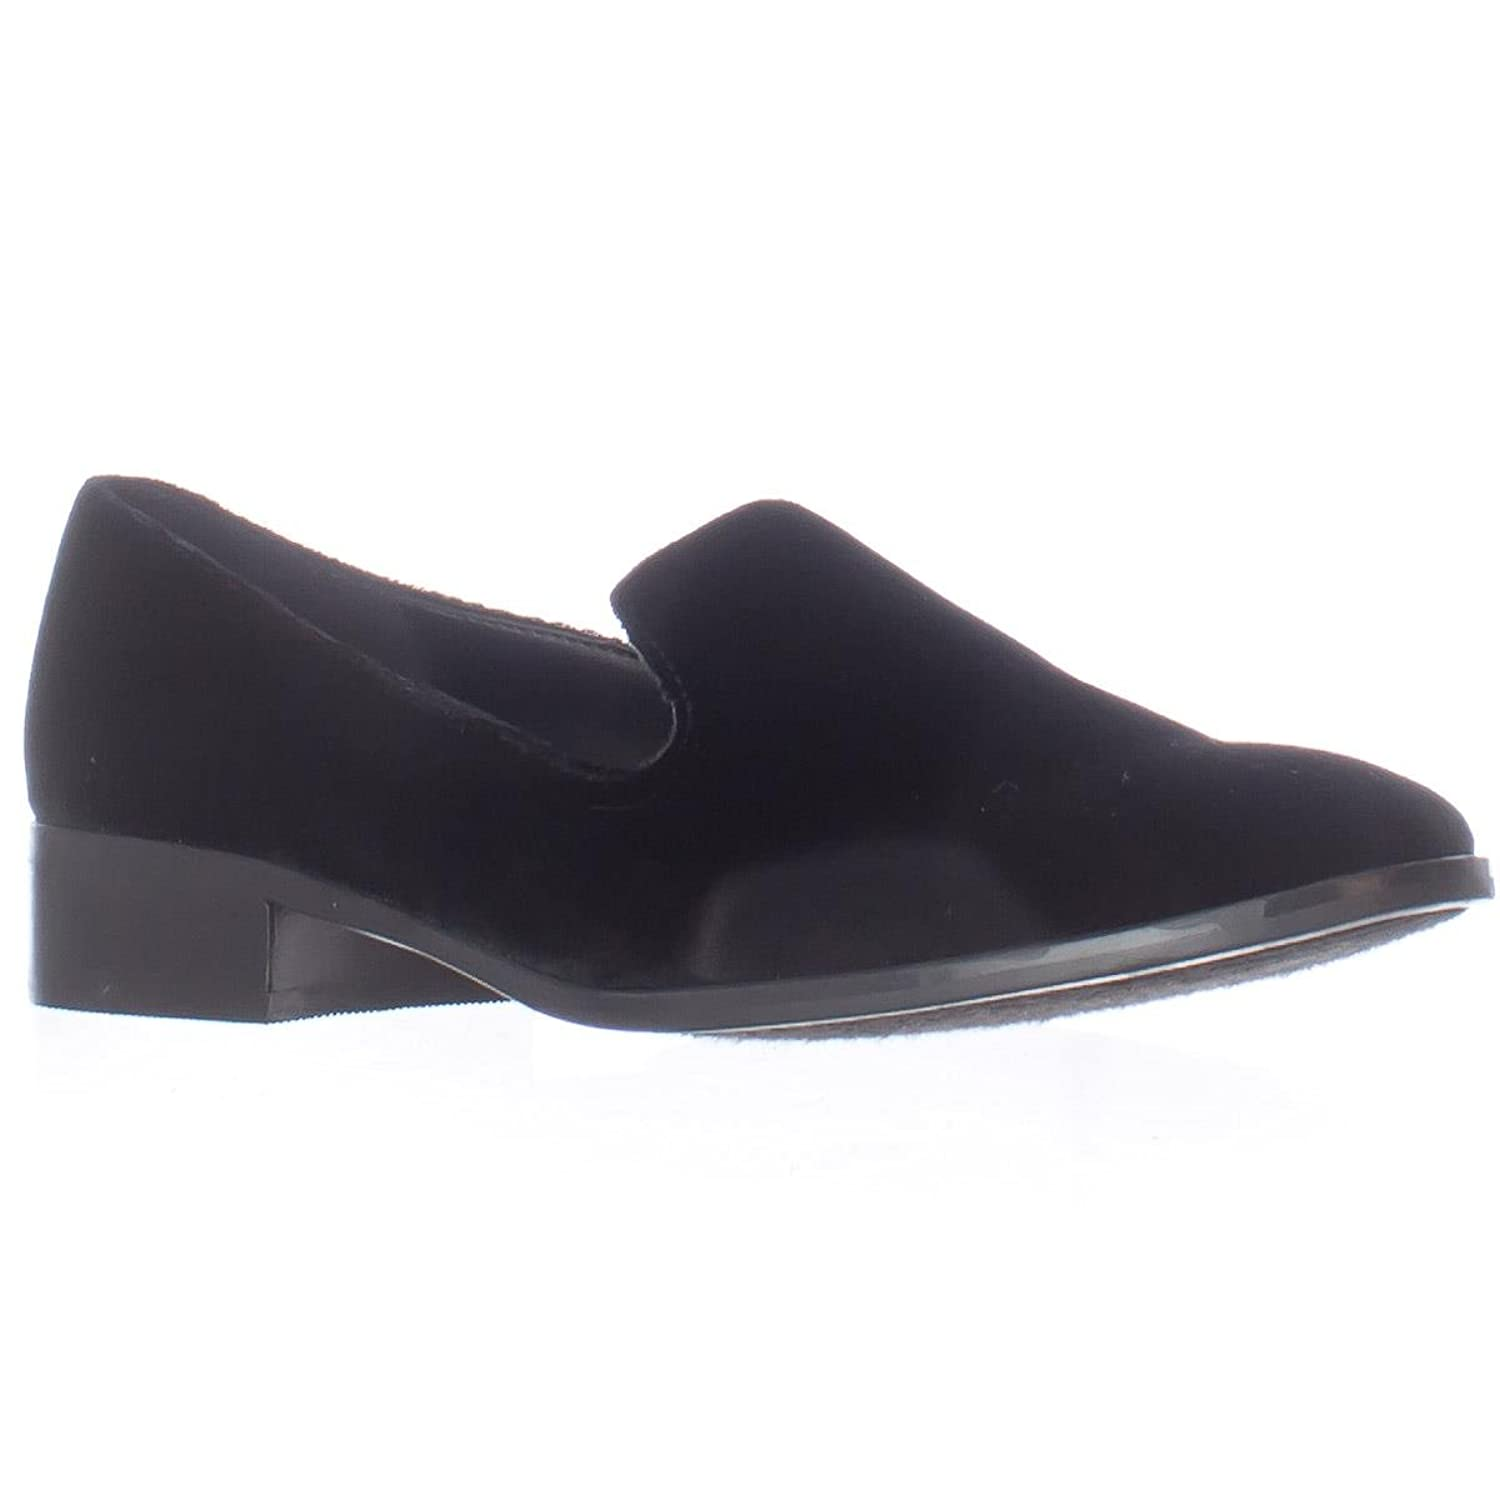 "Marc Fisher ""Traycee 2"" Slipper Loafers"